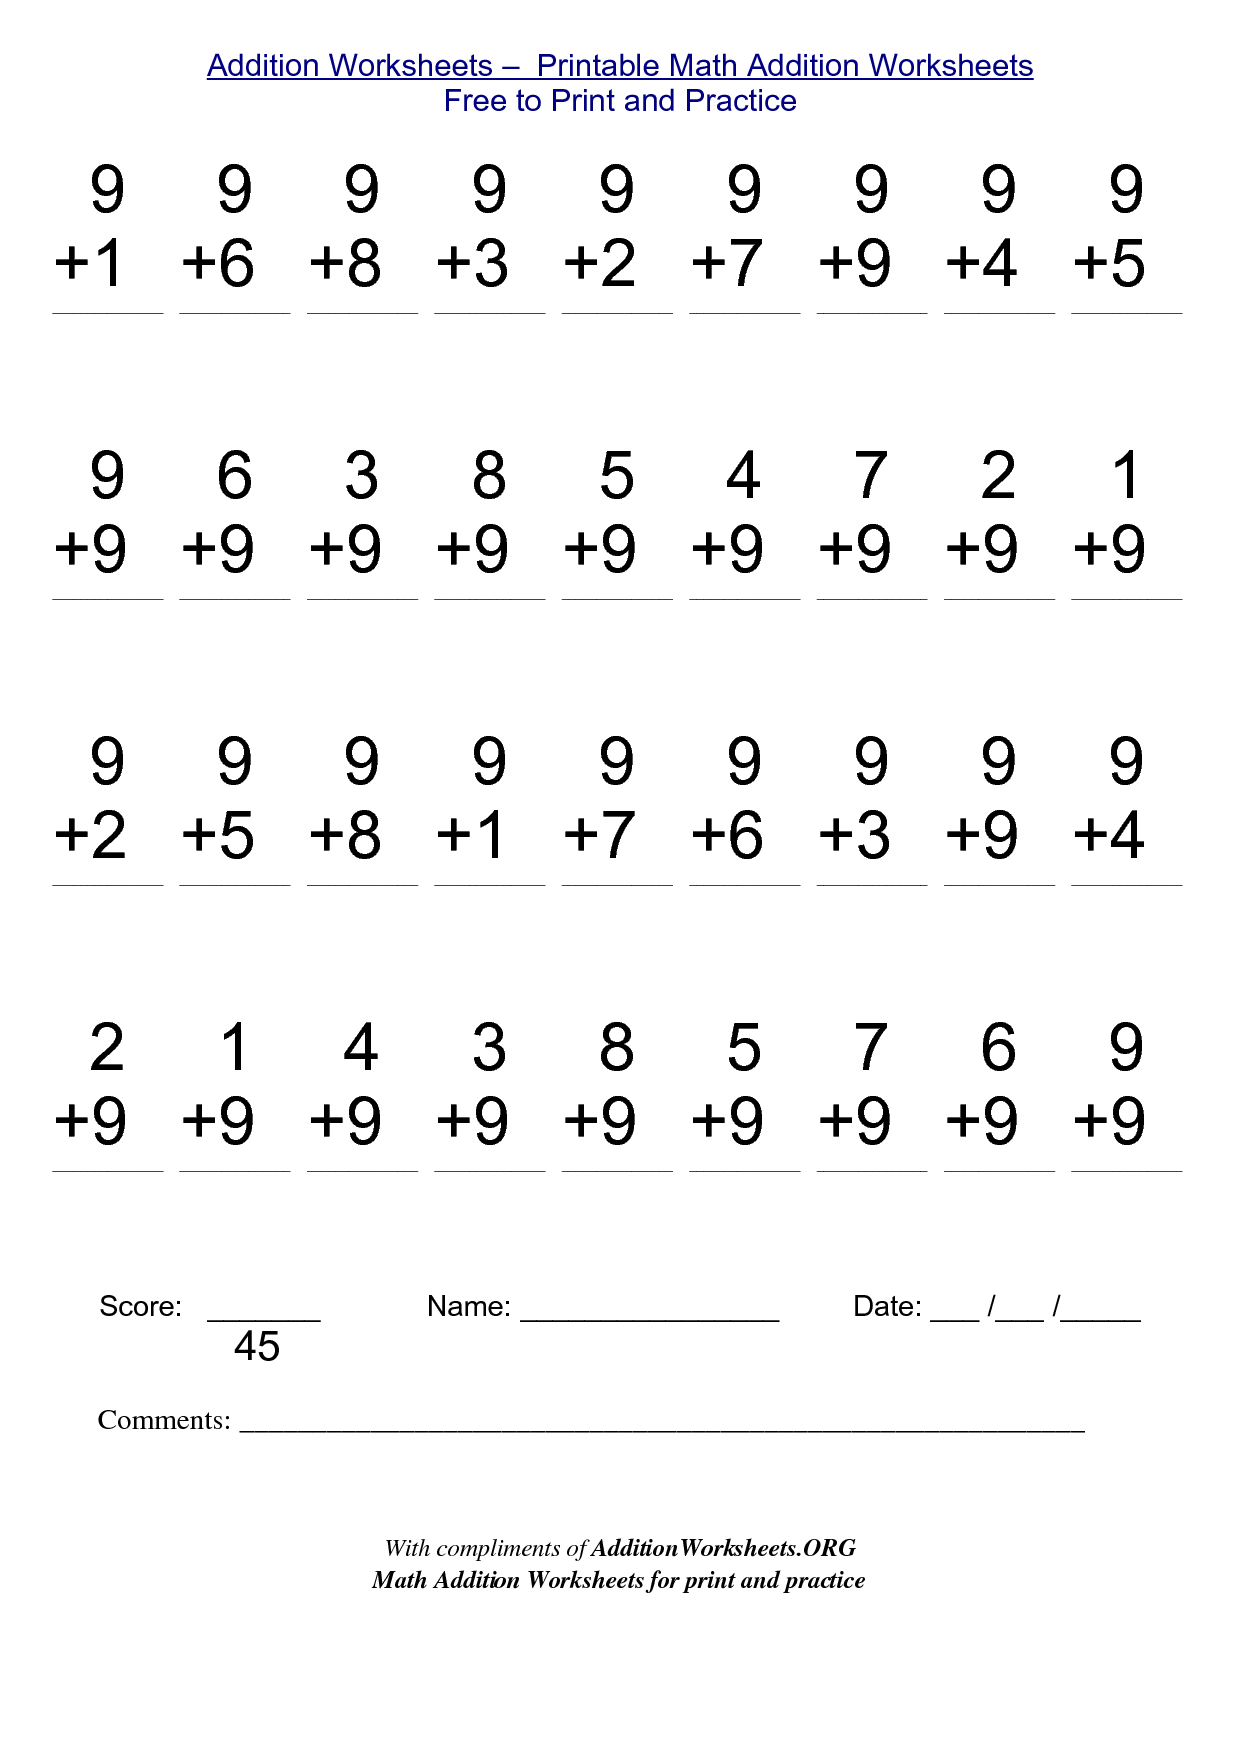 Printables Printable Math Worksheets For Grade 2 1000 images about math practice on pinterest coins place value worksheets and equation